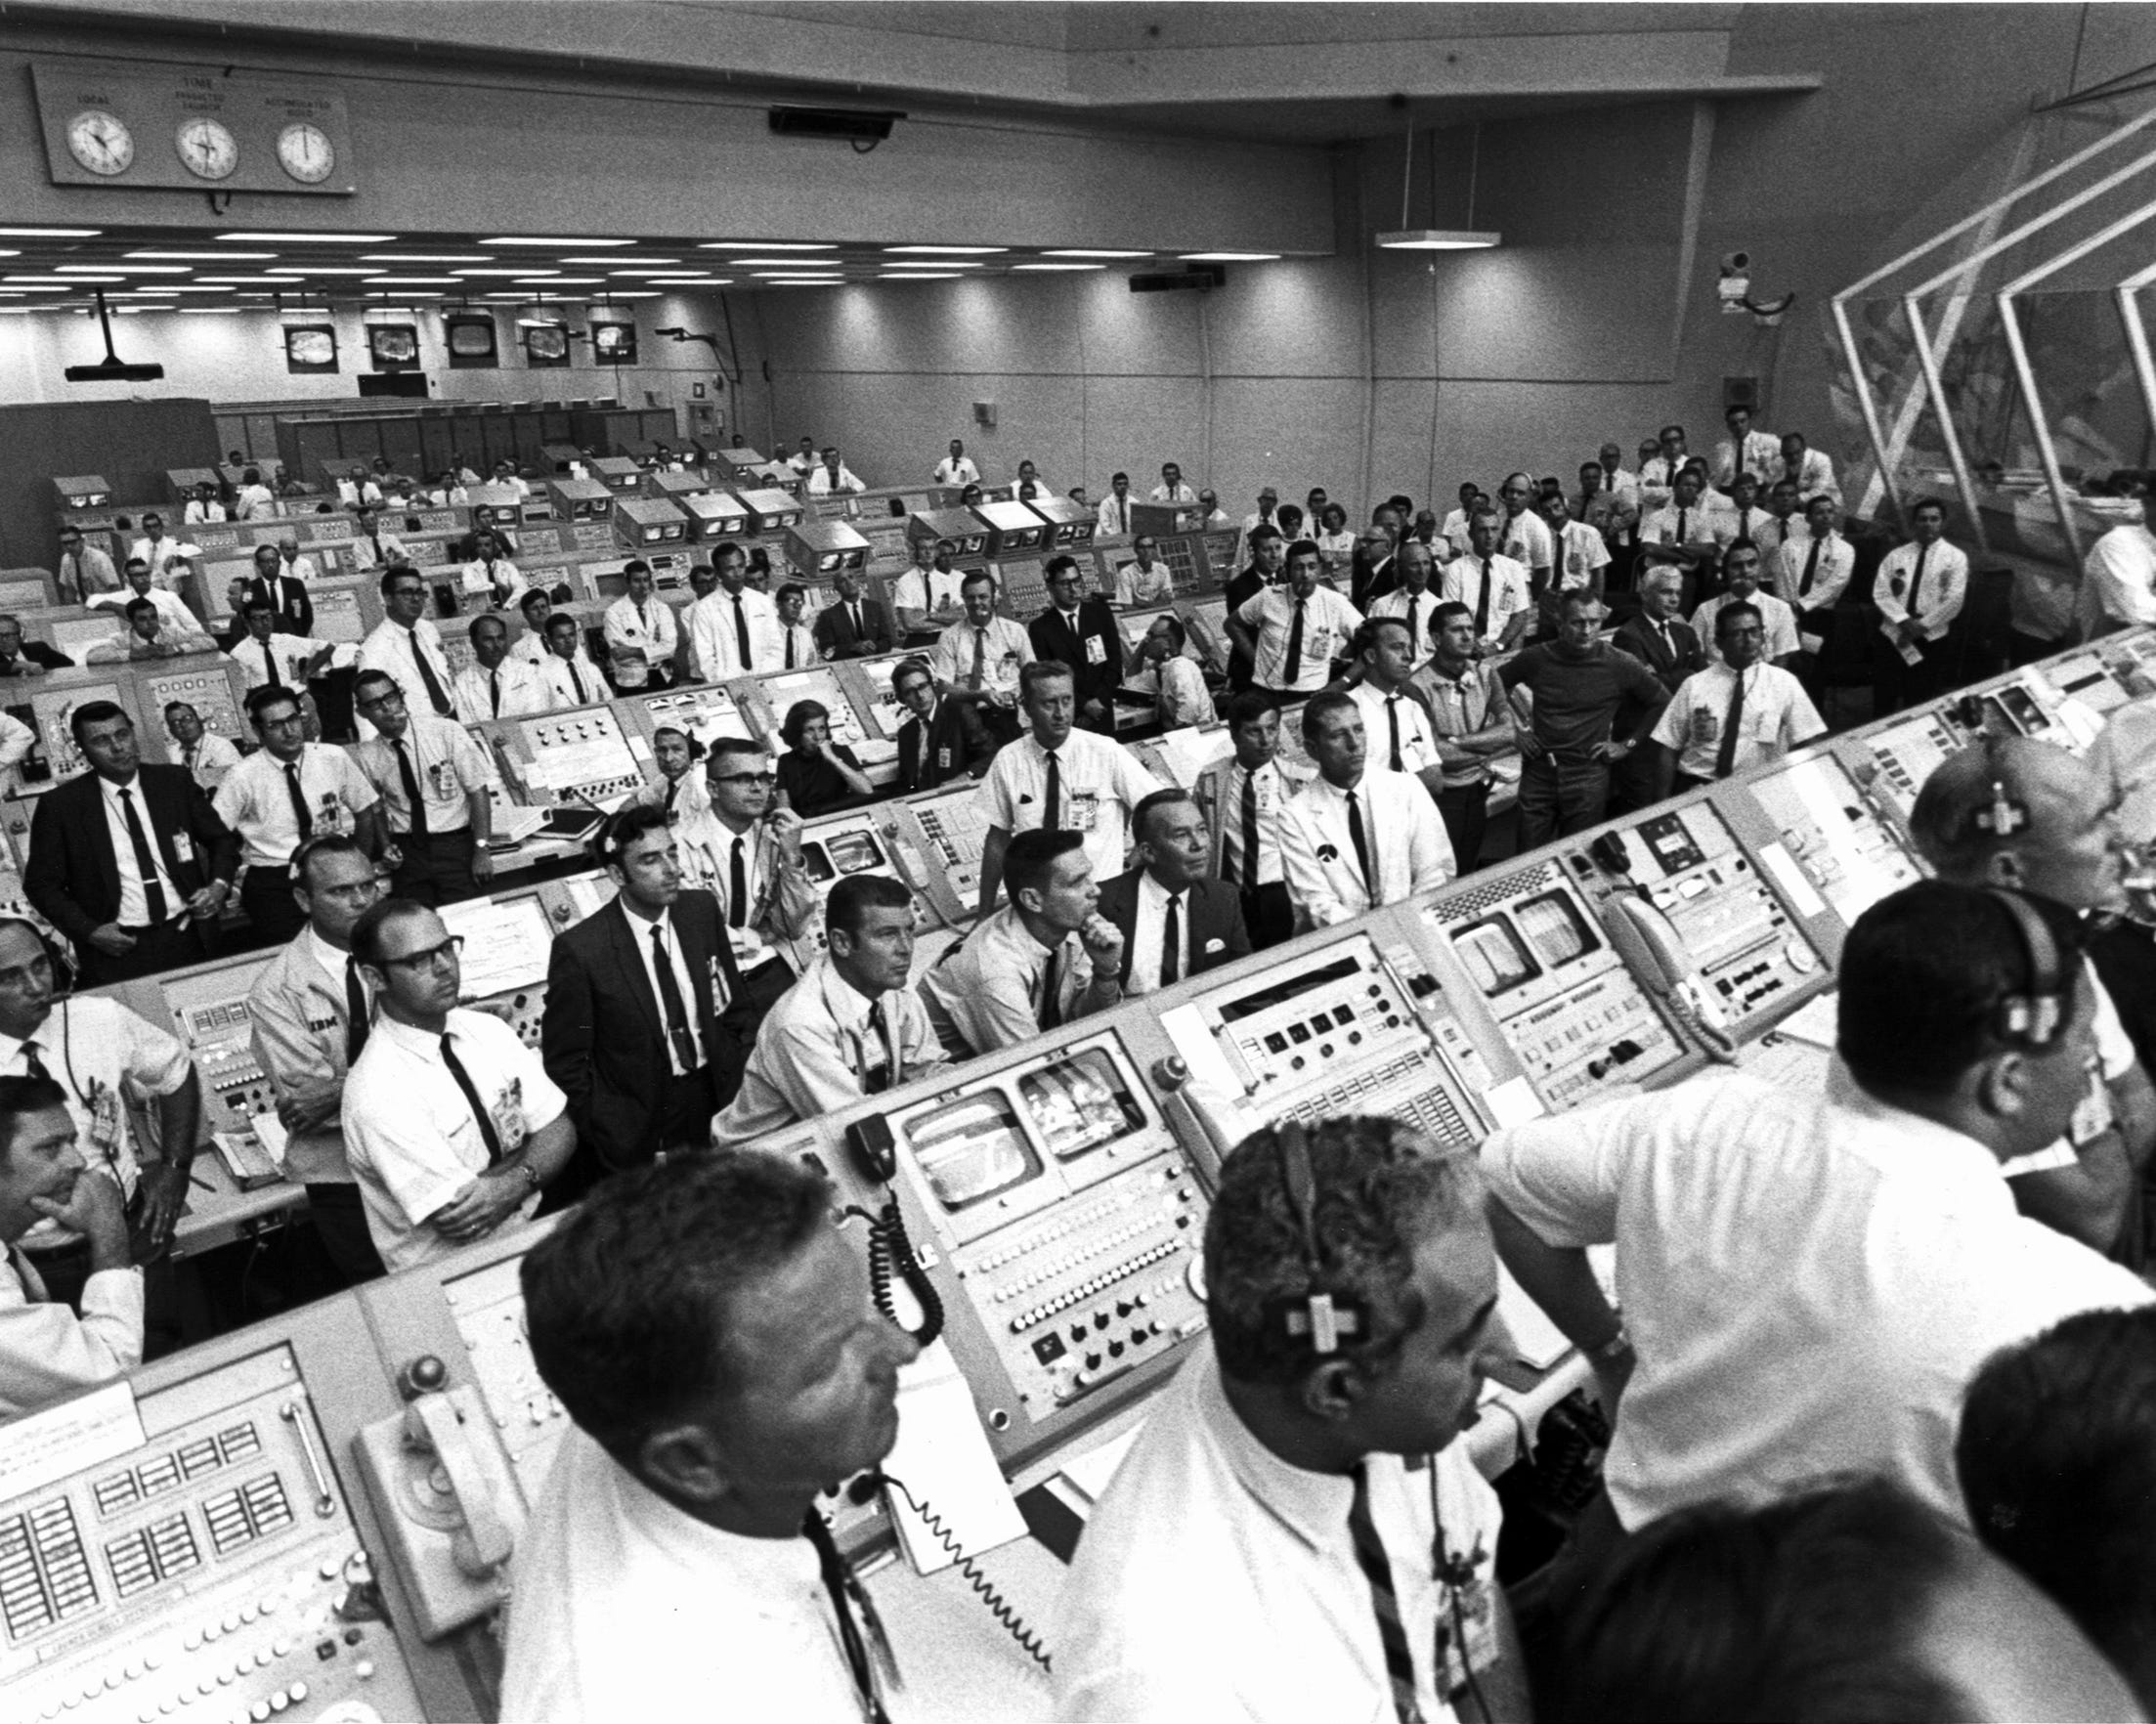 The Launch Control Center during 'Saturn V' rocket launch carrying the 'Apollo 11' astronauts as it lifts off in Cape Canavarel on July 16, 1969.